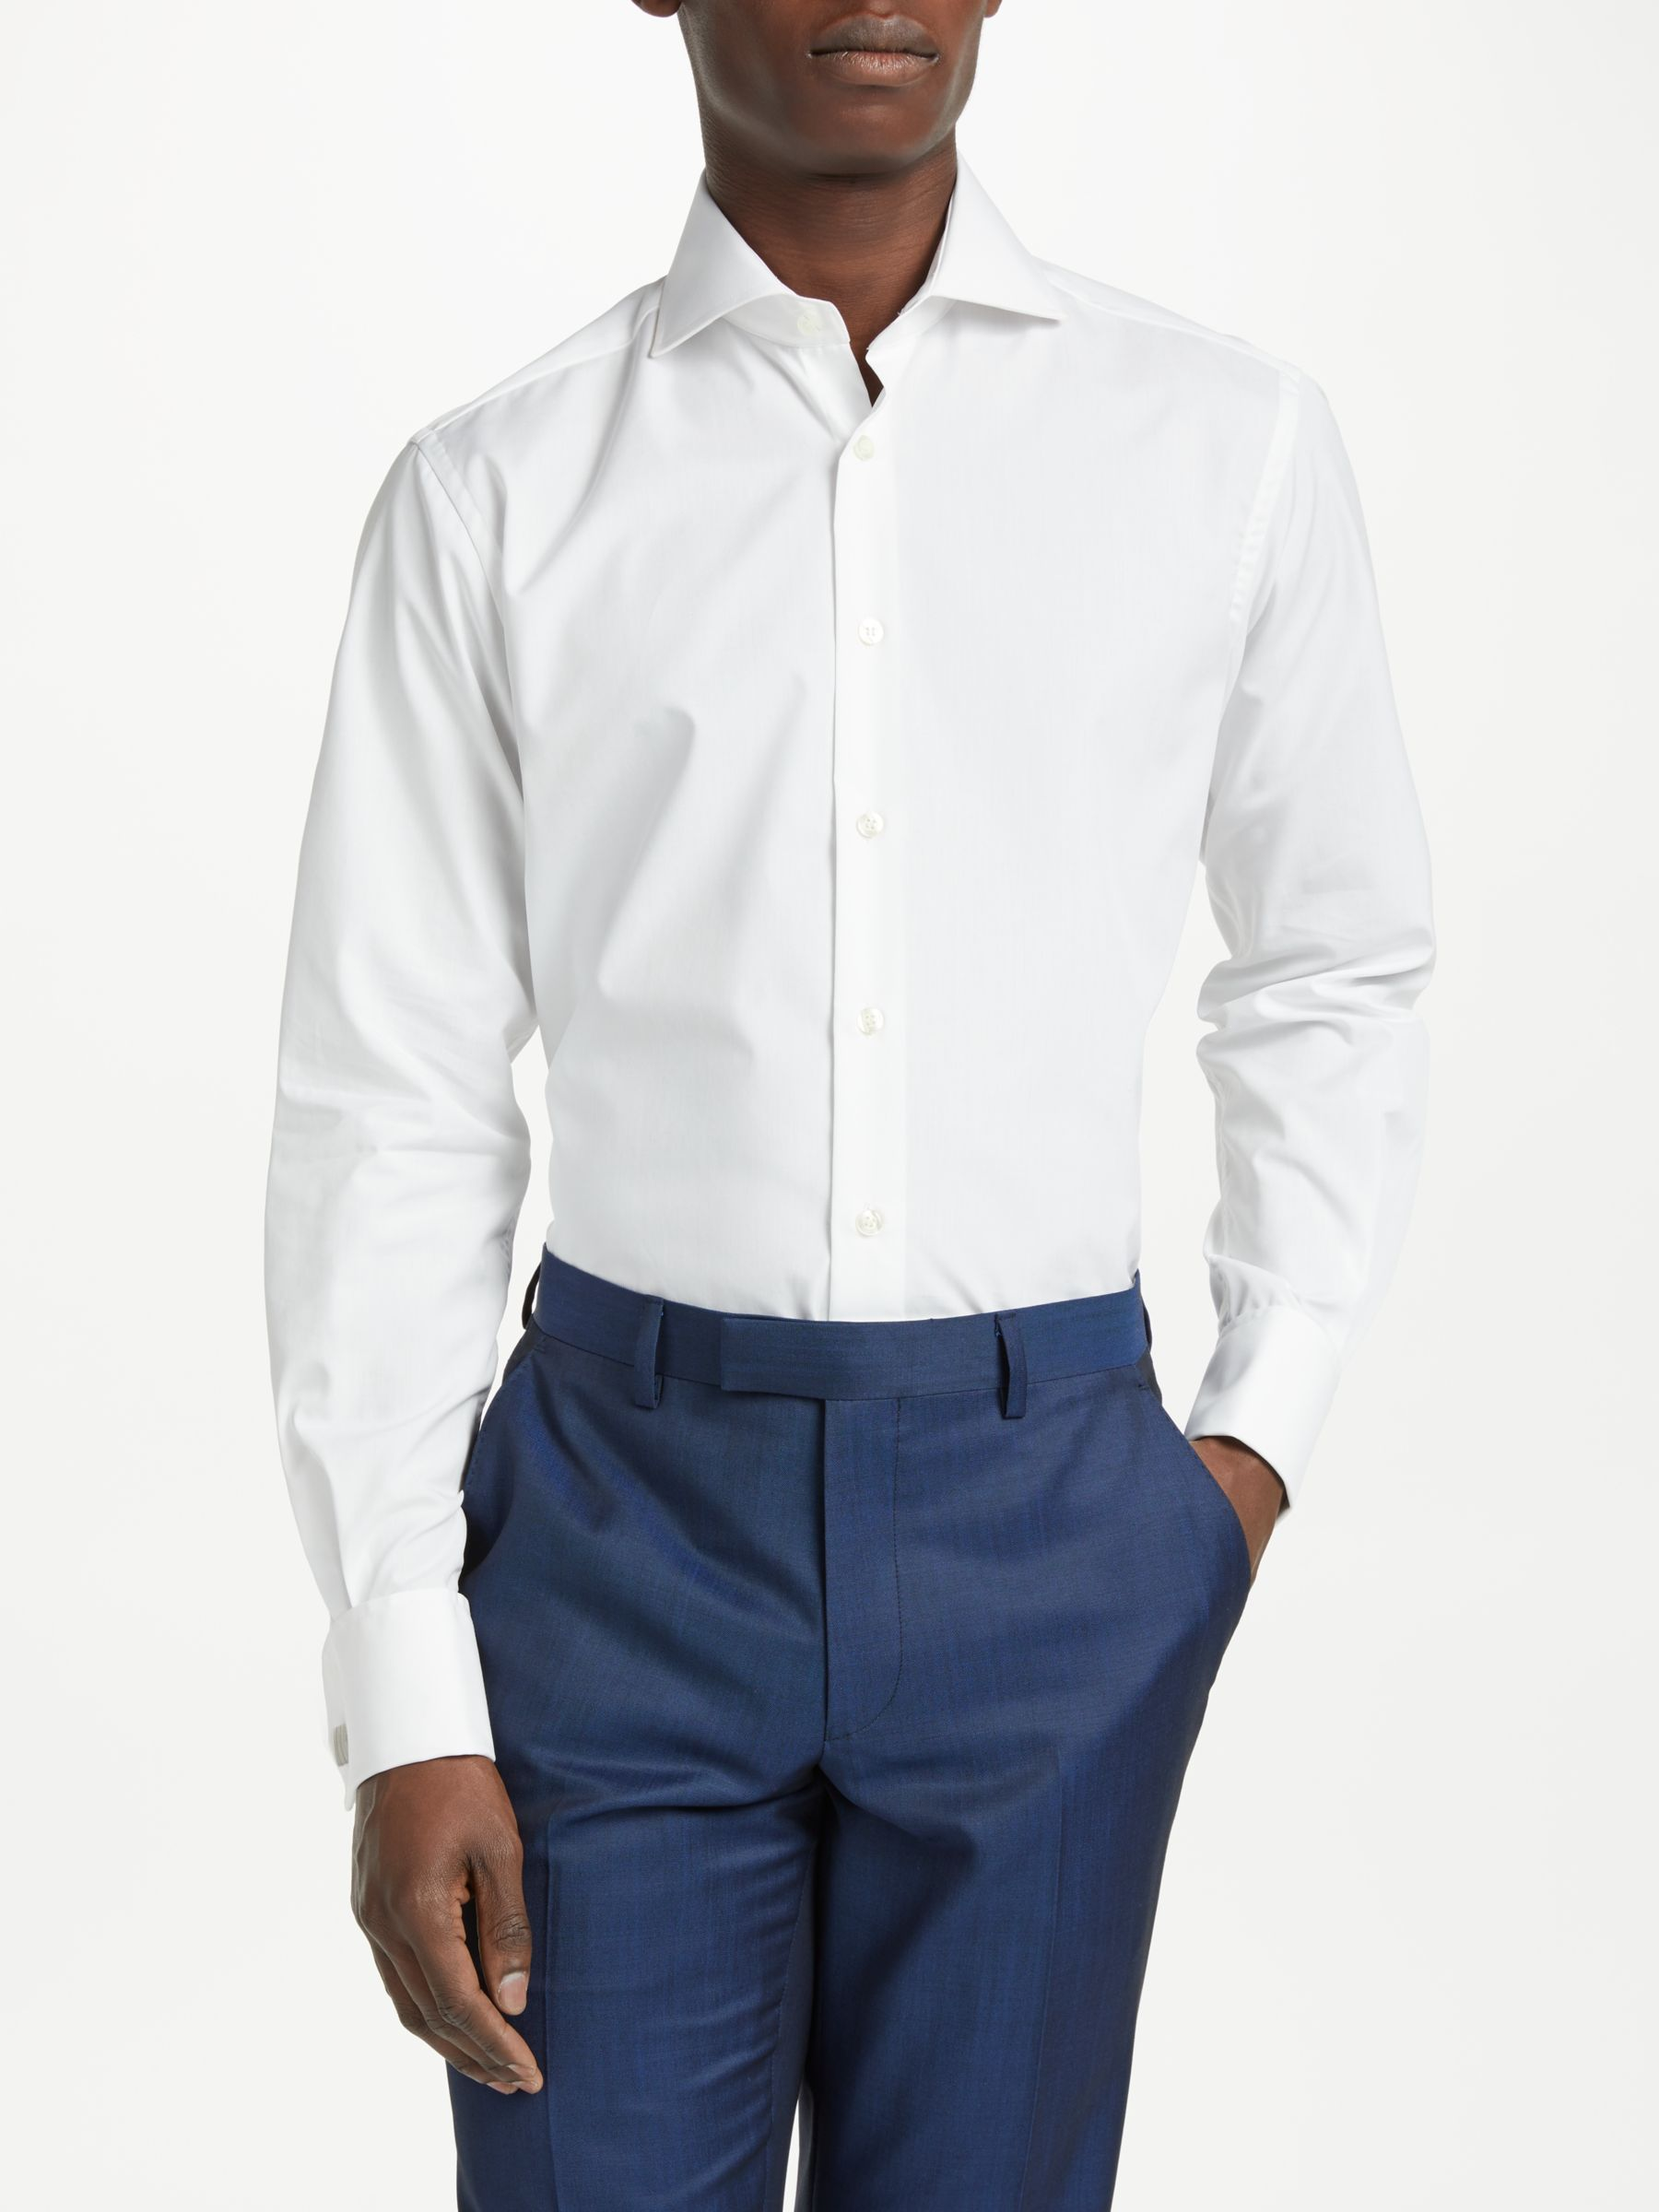 708d5f202259 Smyth & Gibson Non Iron Poplin Double Cuff Contemporary Fit Shirt, White at  John Lewis & Partners